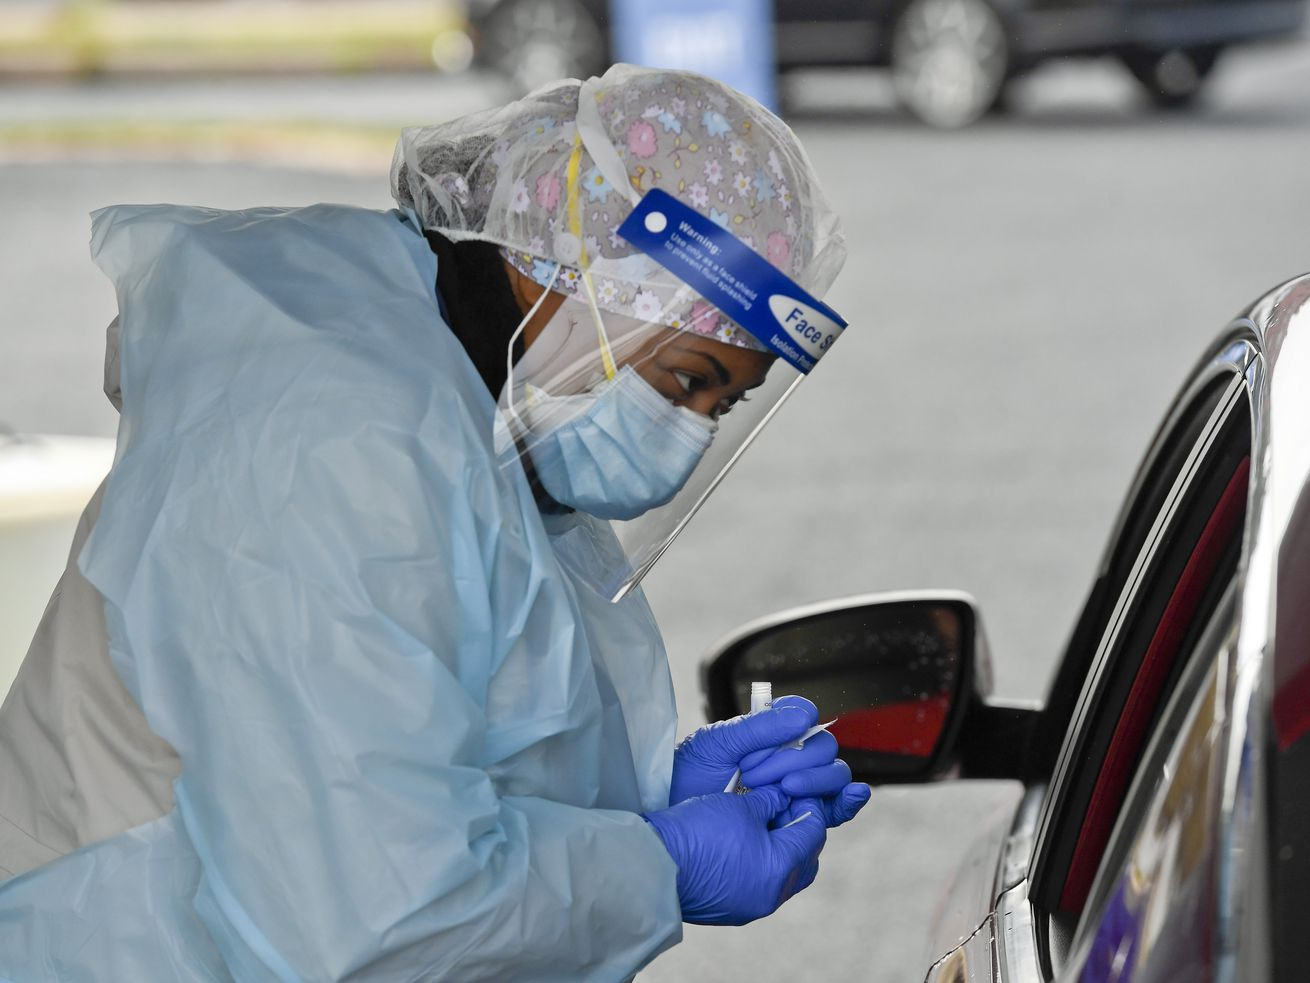 A Black woman in scrubs, a protective gown, medical cap, mask, and face shield, opens a vial with gloved hands. She appears to be speaking into the window of a car.